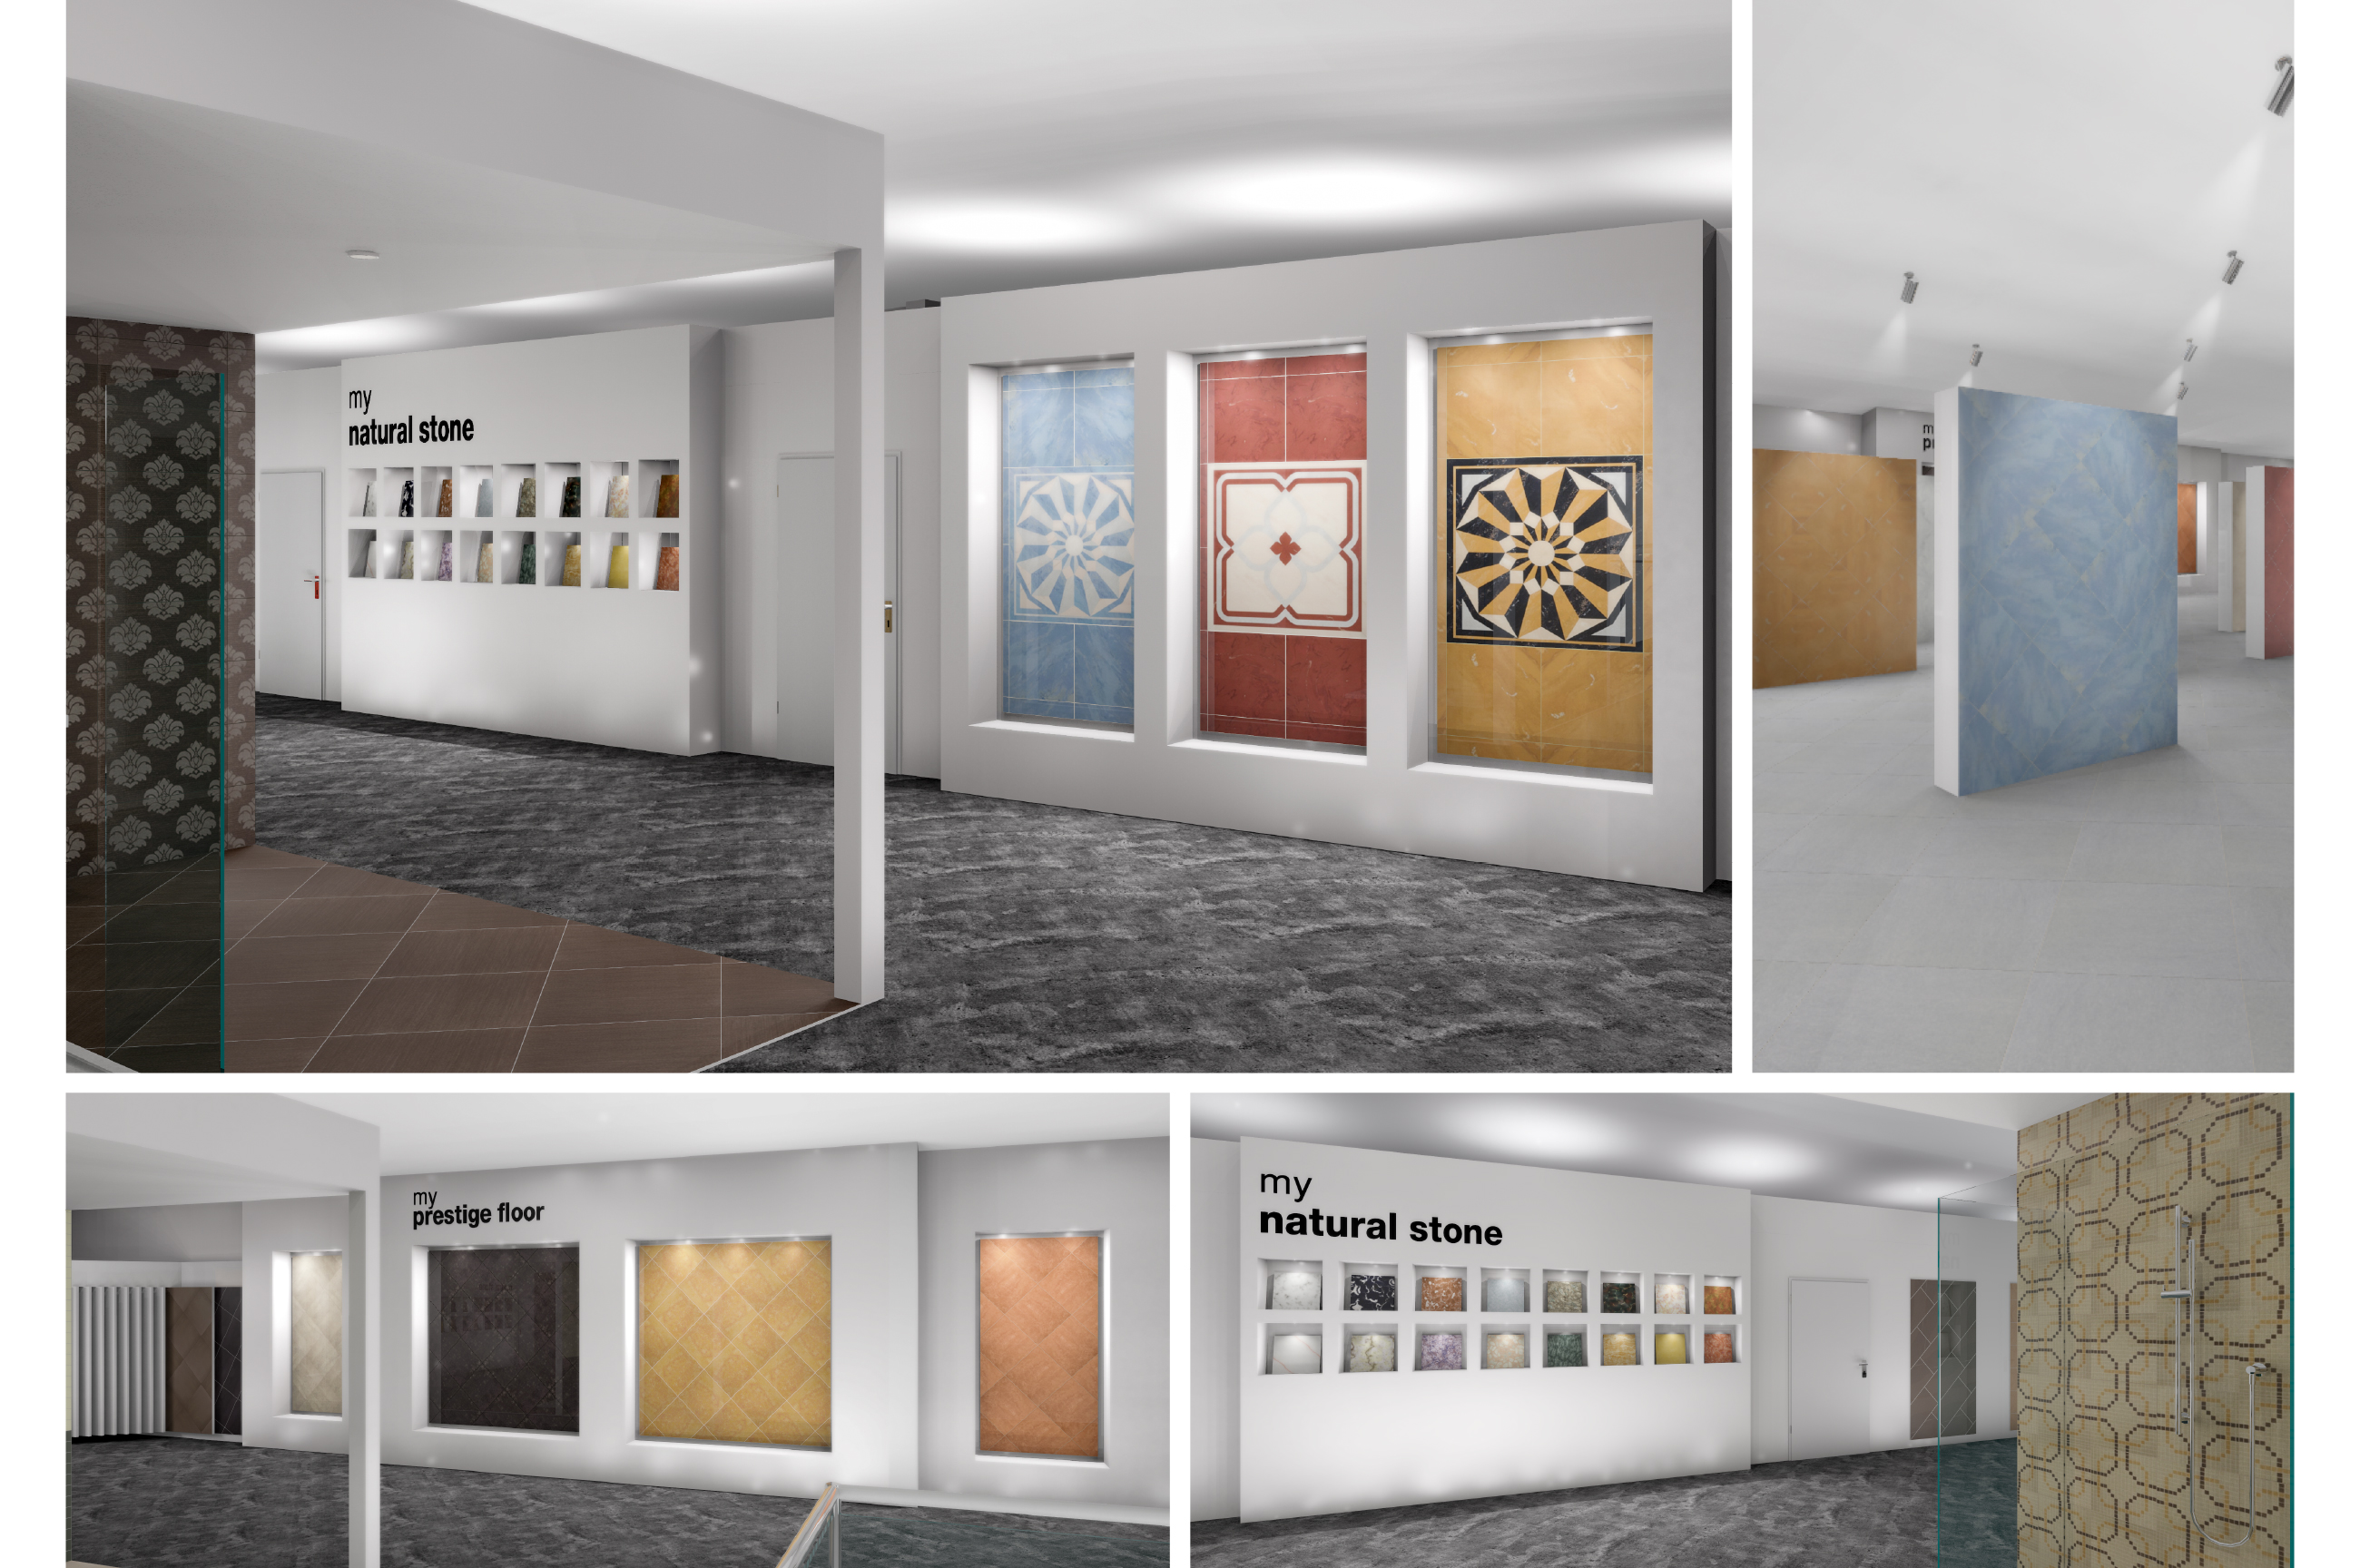 Tile Mountain showroom interior design - creative polished porcelain and marble tiles display